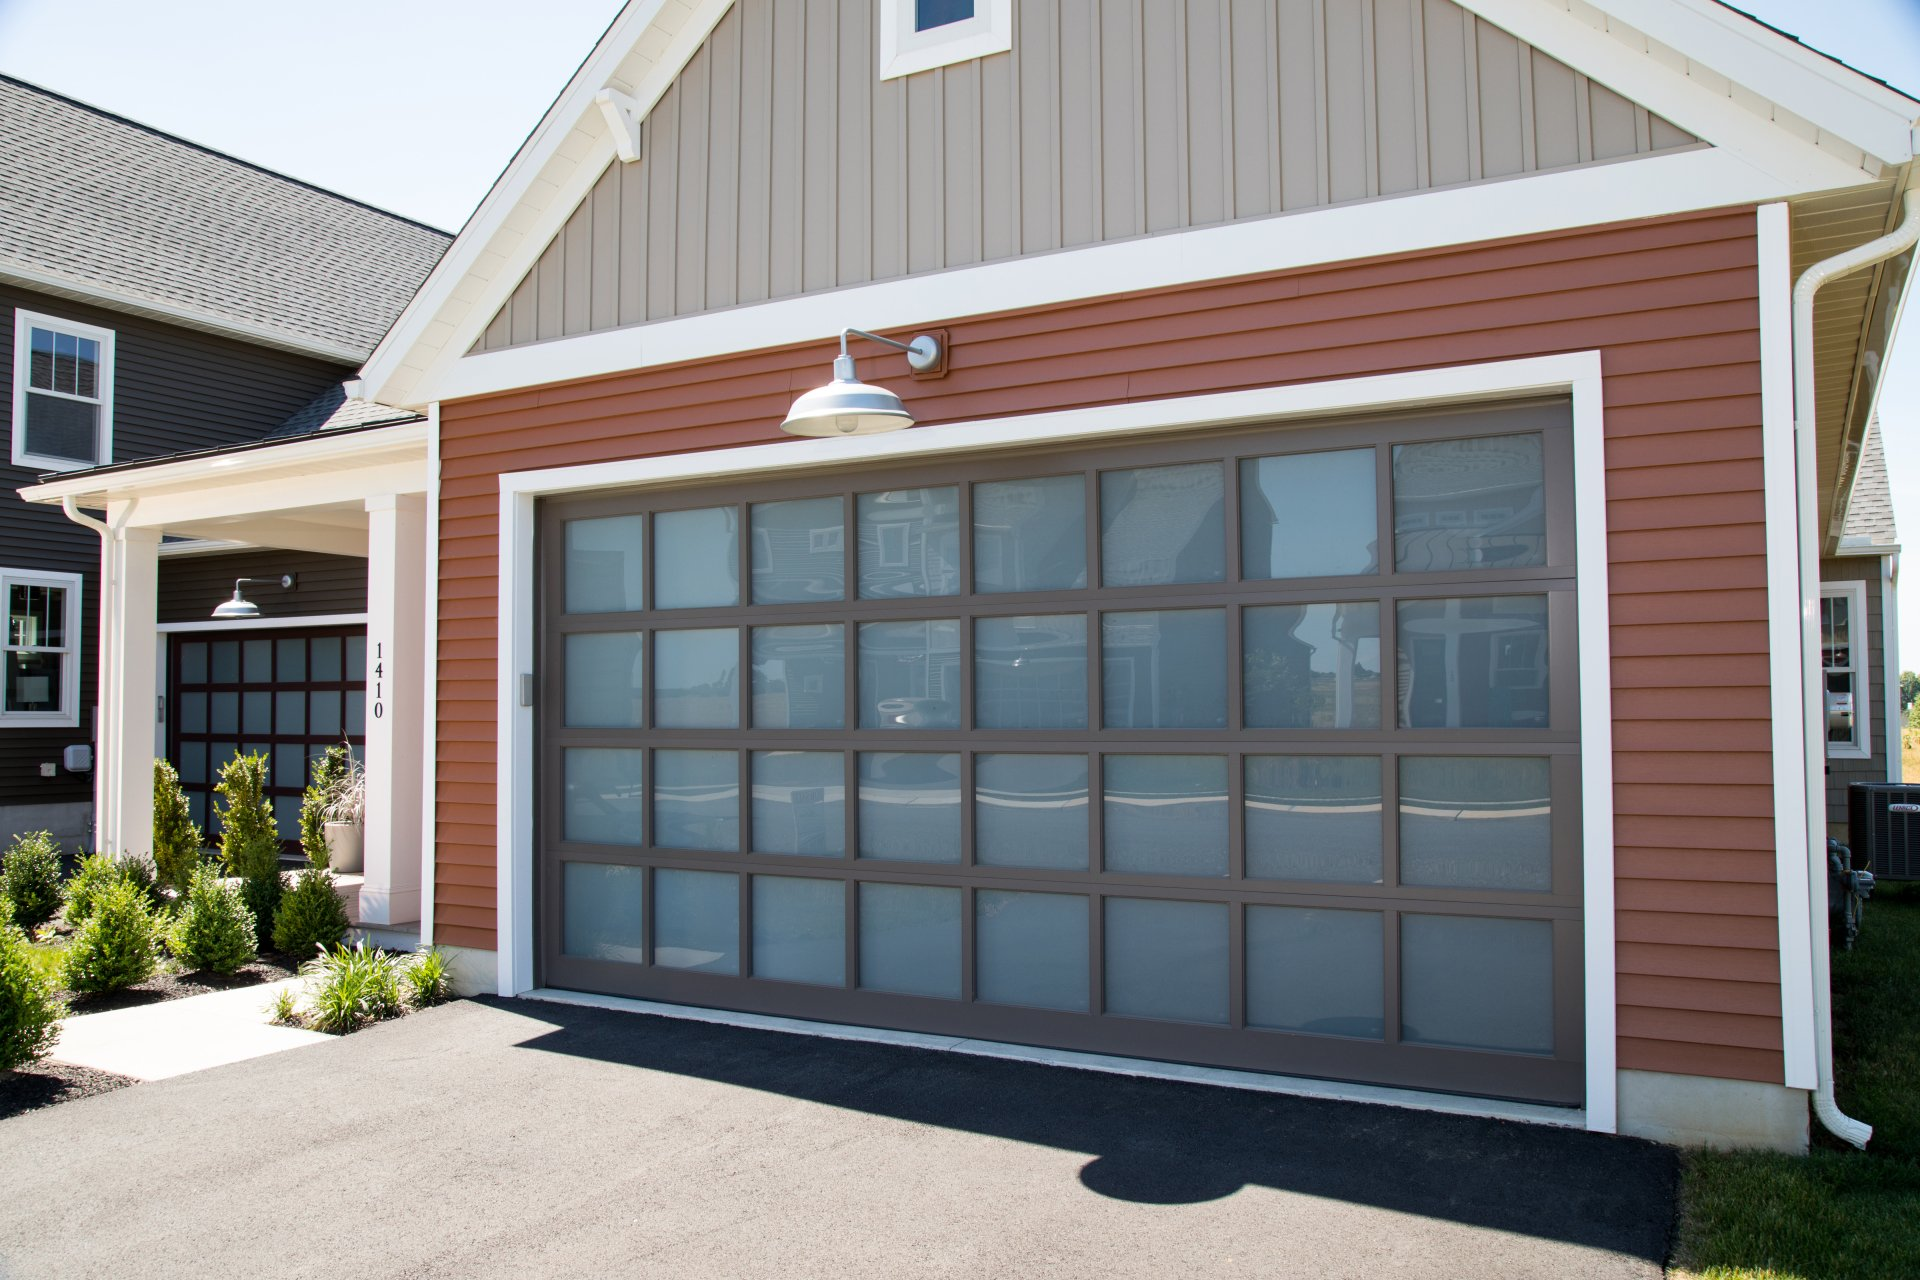 image shoreview doors garage all seasons design new wageuzi sensational door before